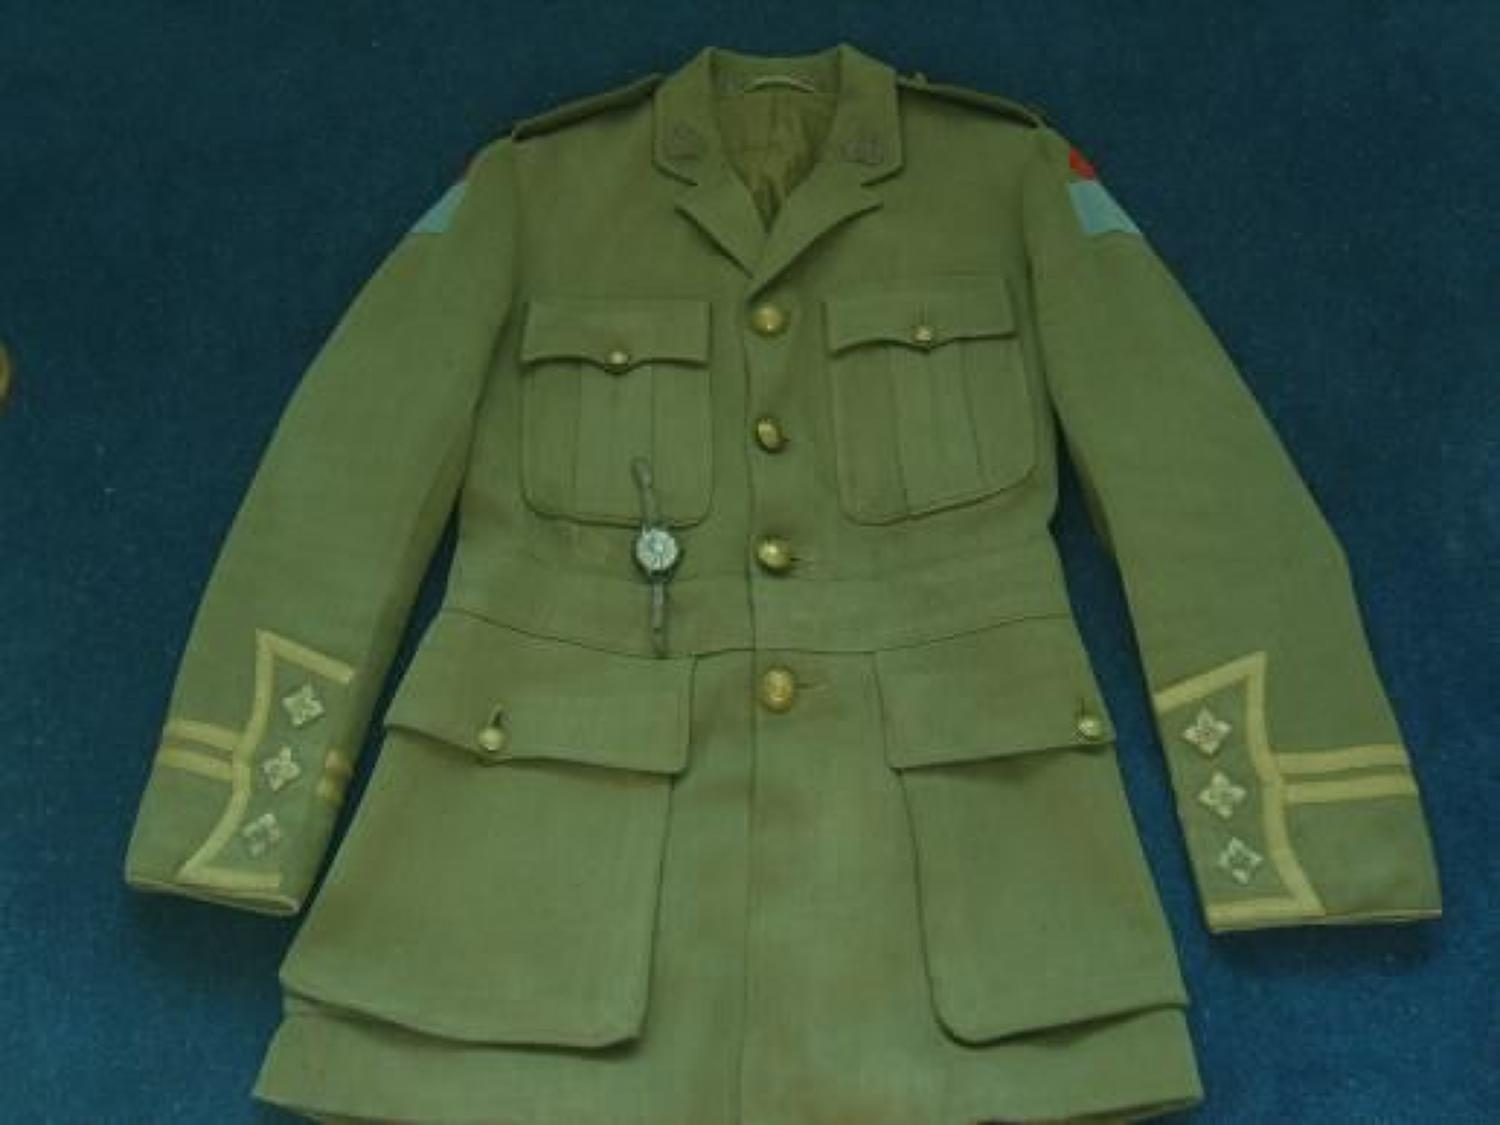 MORE PHOTOS: CANADIAN CUFF RANK TUNIC, CAP. HOLSTER, AMMO POUCH, BELT & WATCH